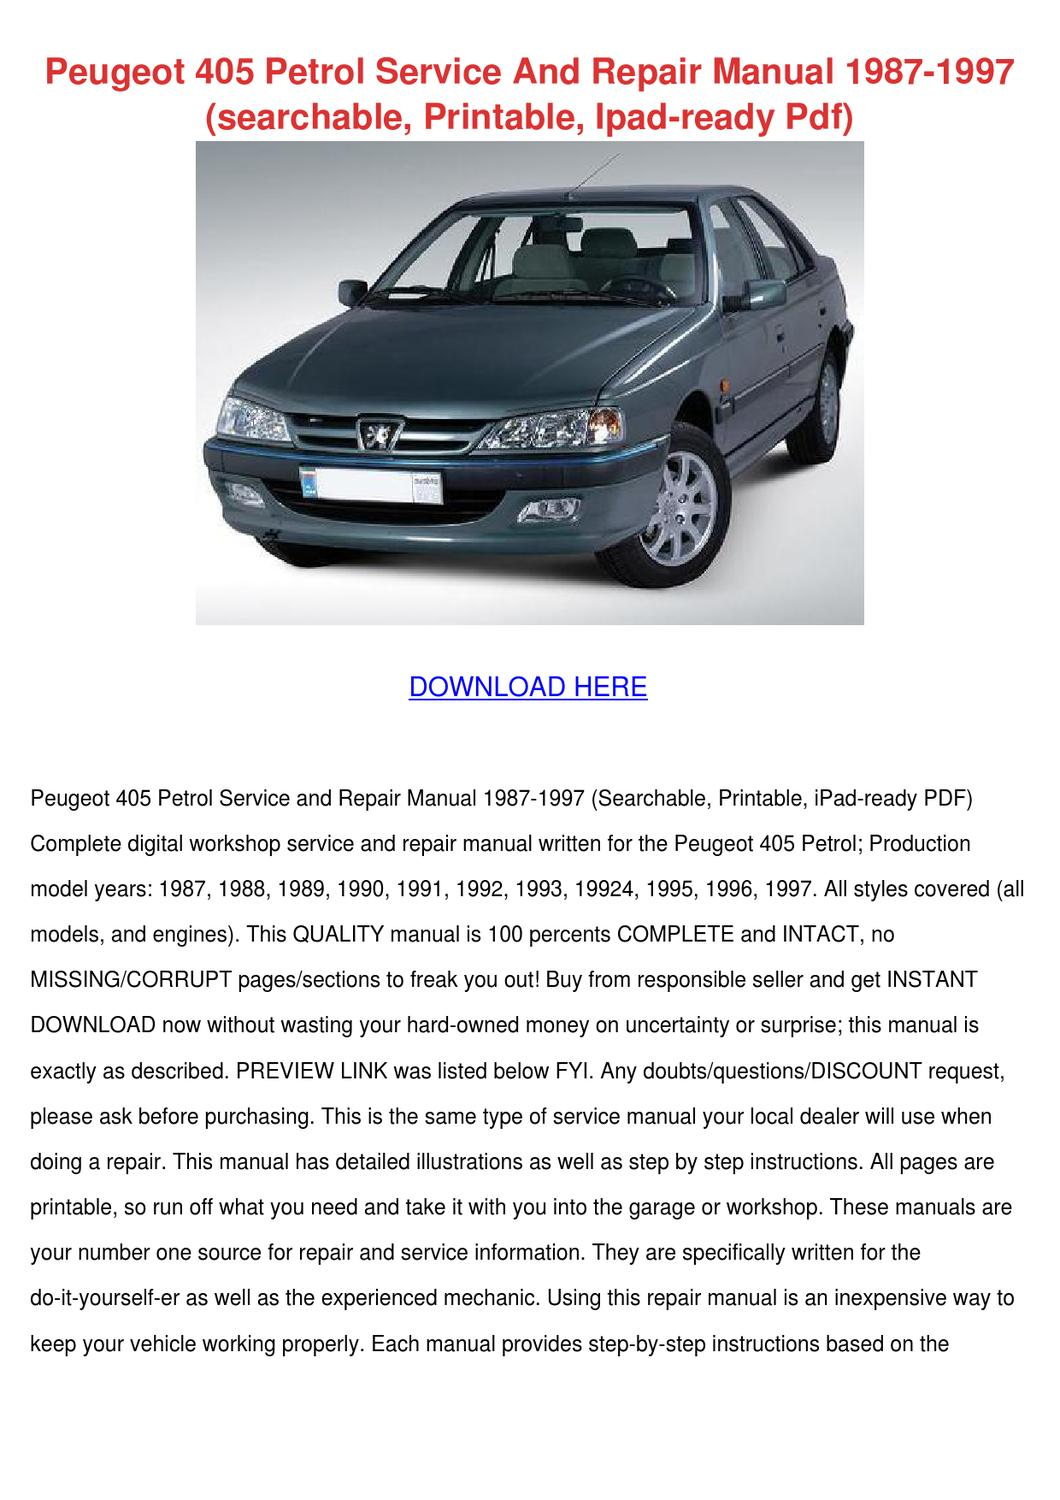 Peugeot 405 Petrol Service And Repair Manual By Willardthao Issuu Trekker Wiring Loom